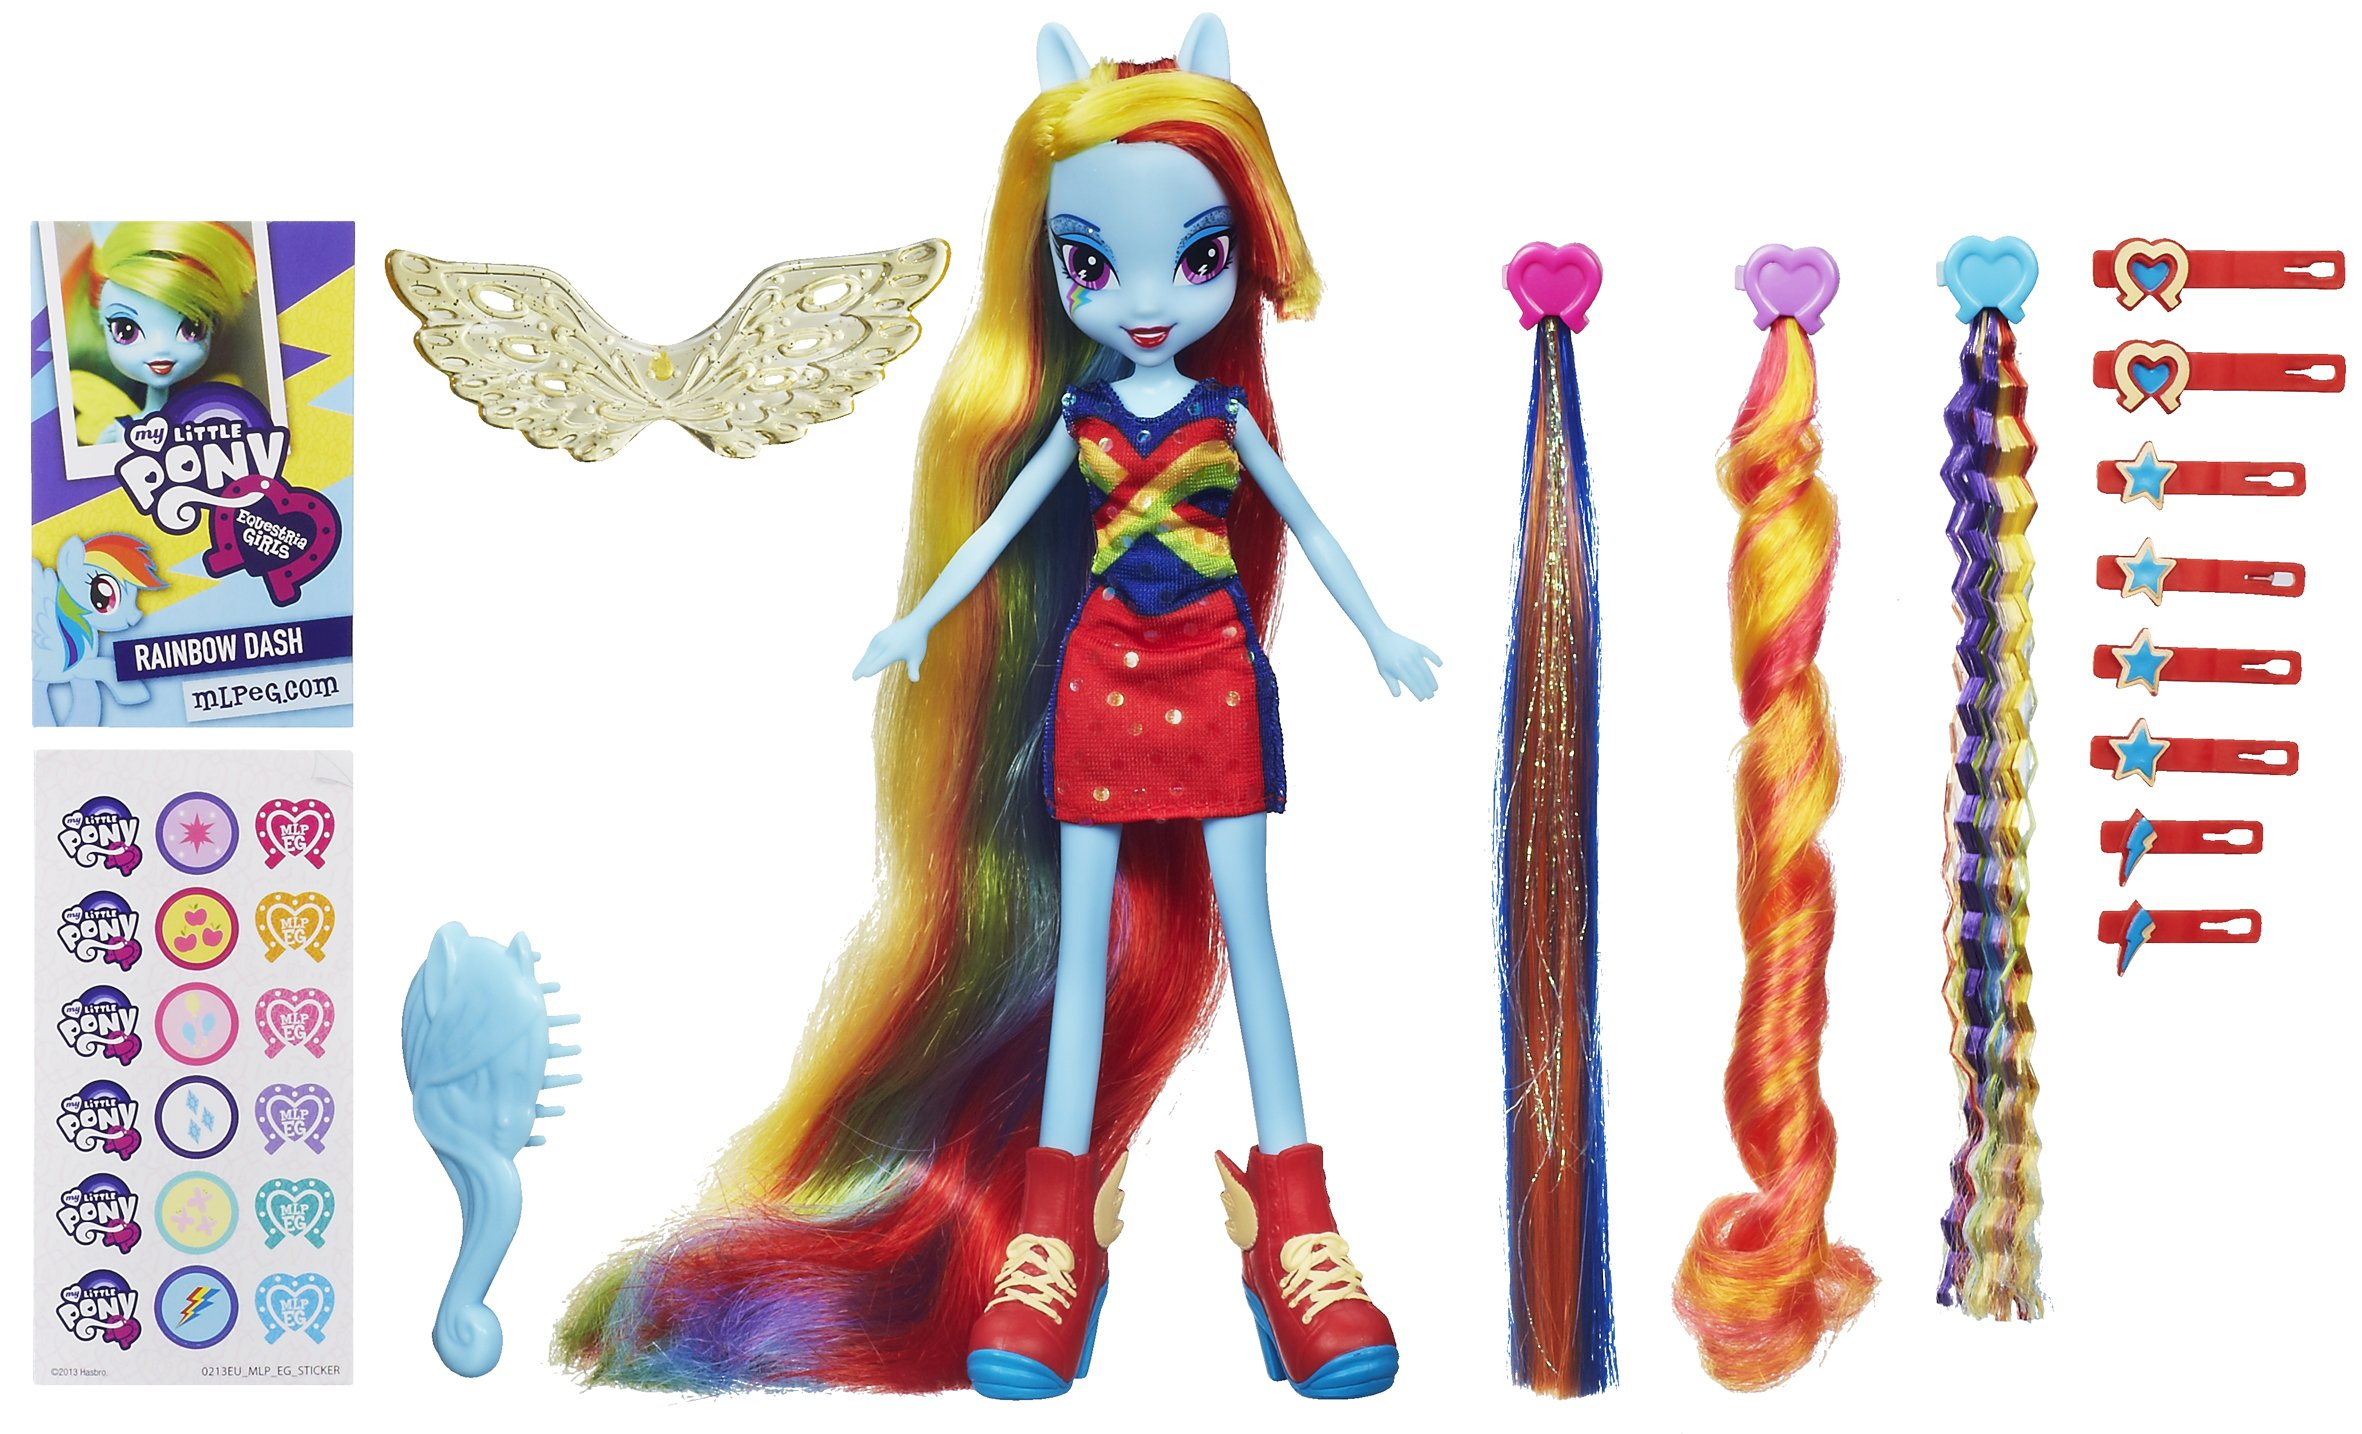 HASBRO Equestria Girls - Mon petit poney devient une fille ! Rainbow_Dash_Equestria_Girls_hairstyling_doll